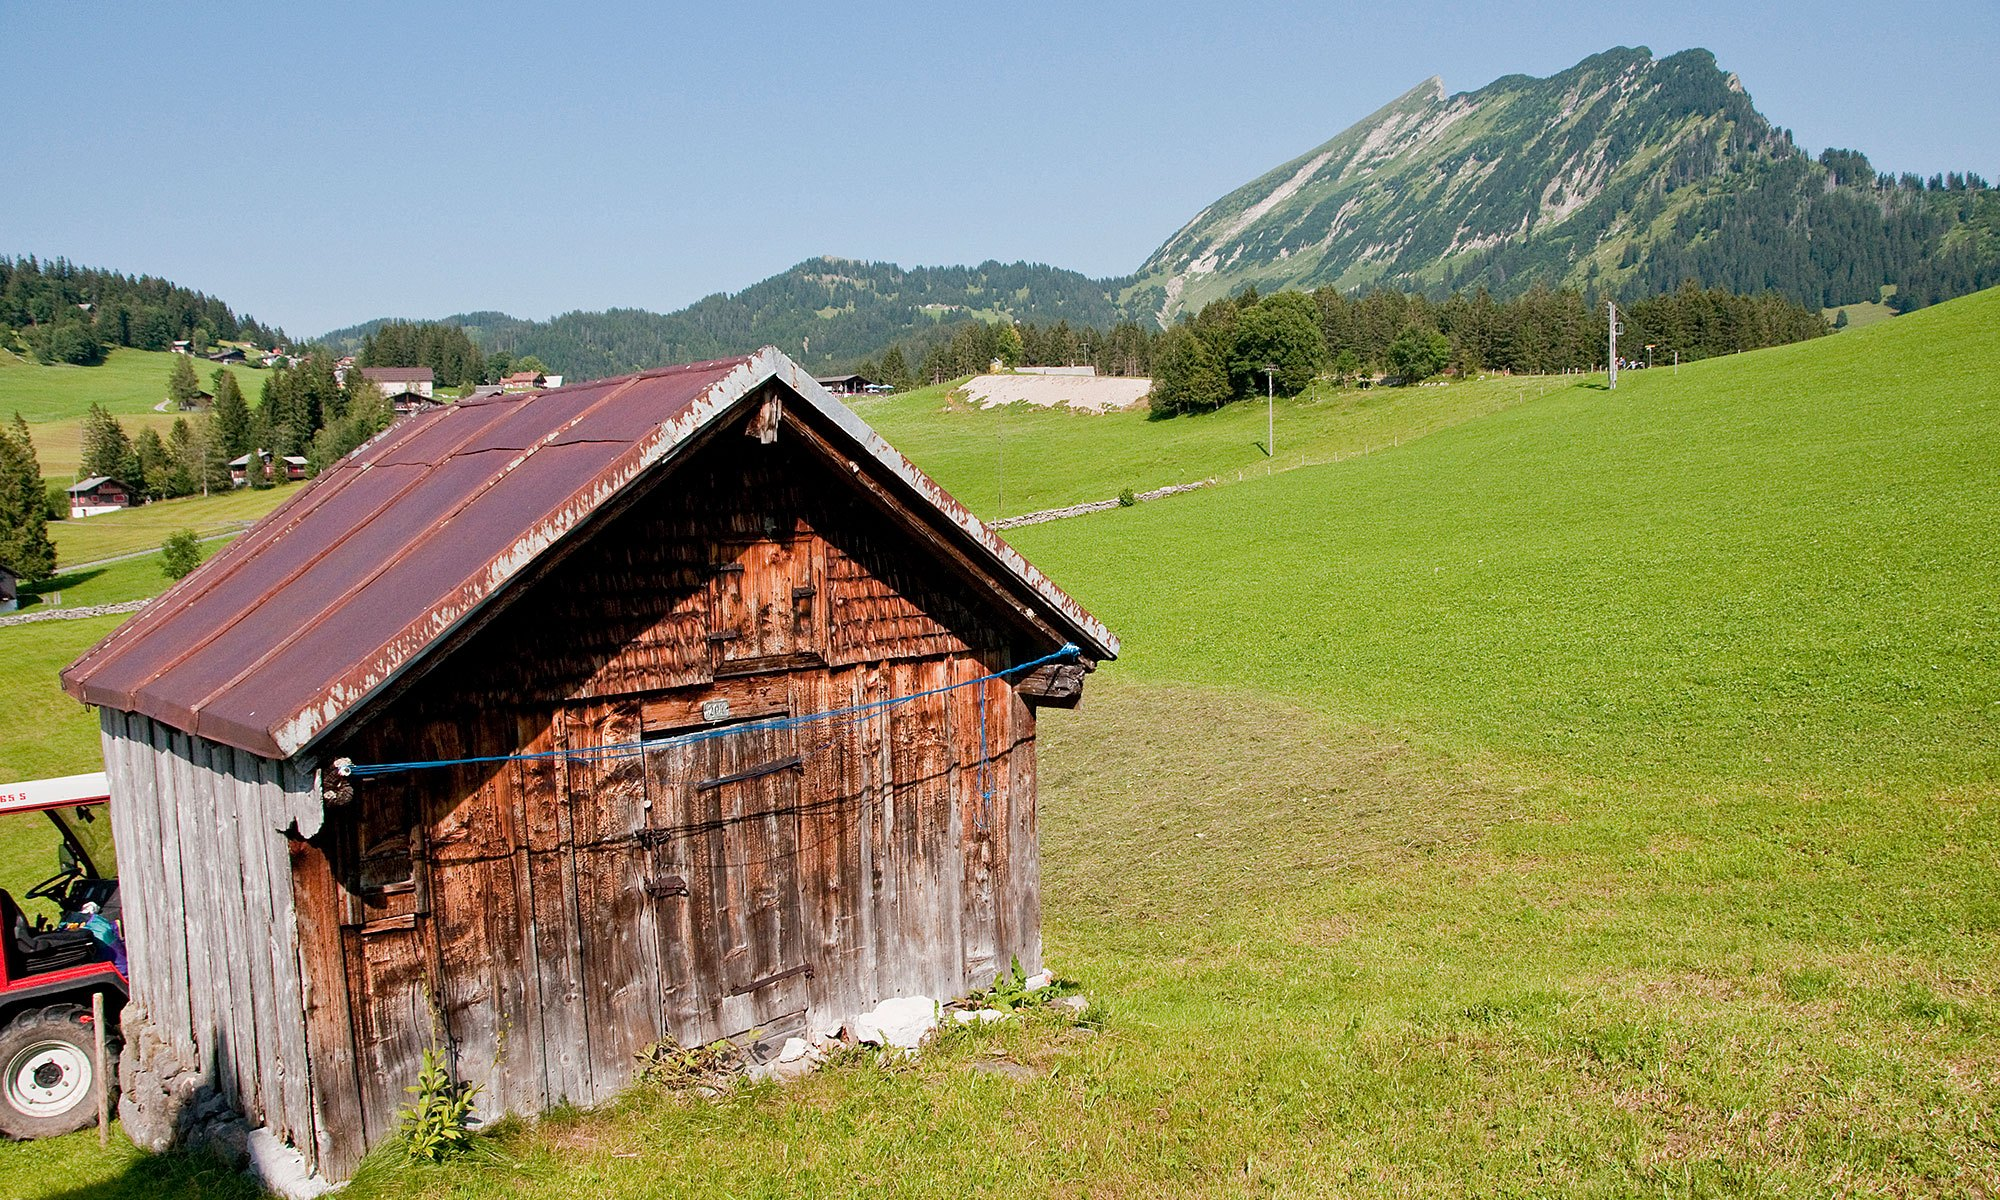 Wooden Shed in Amden, Switzerland